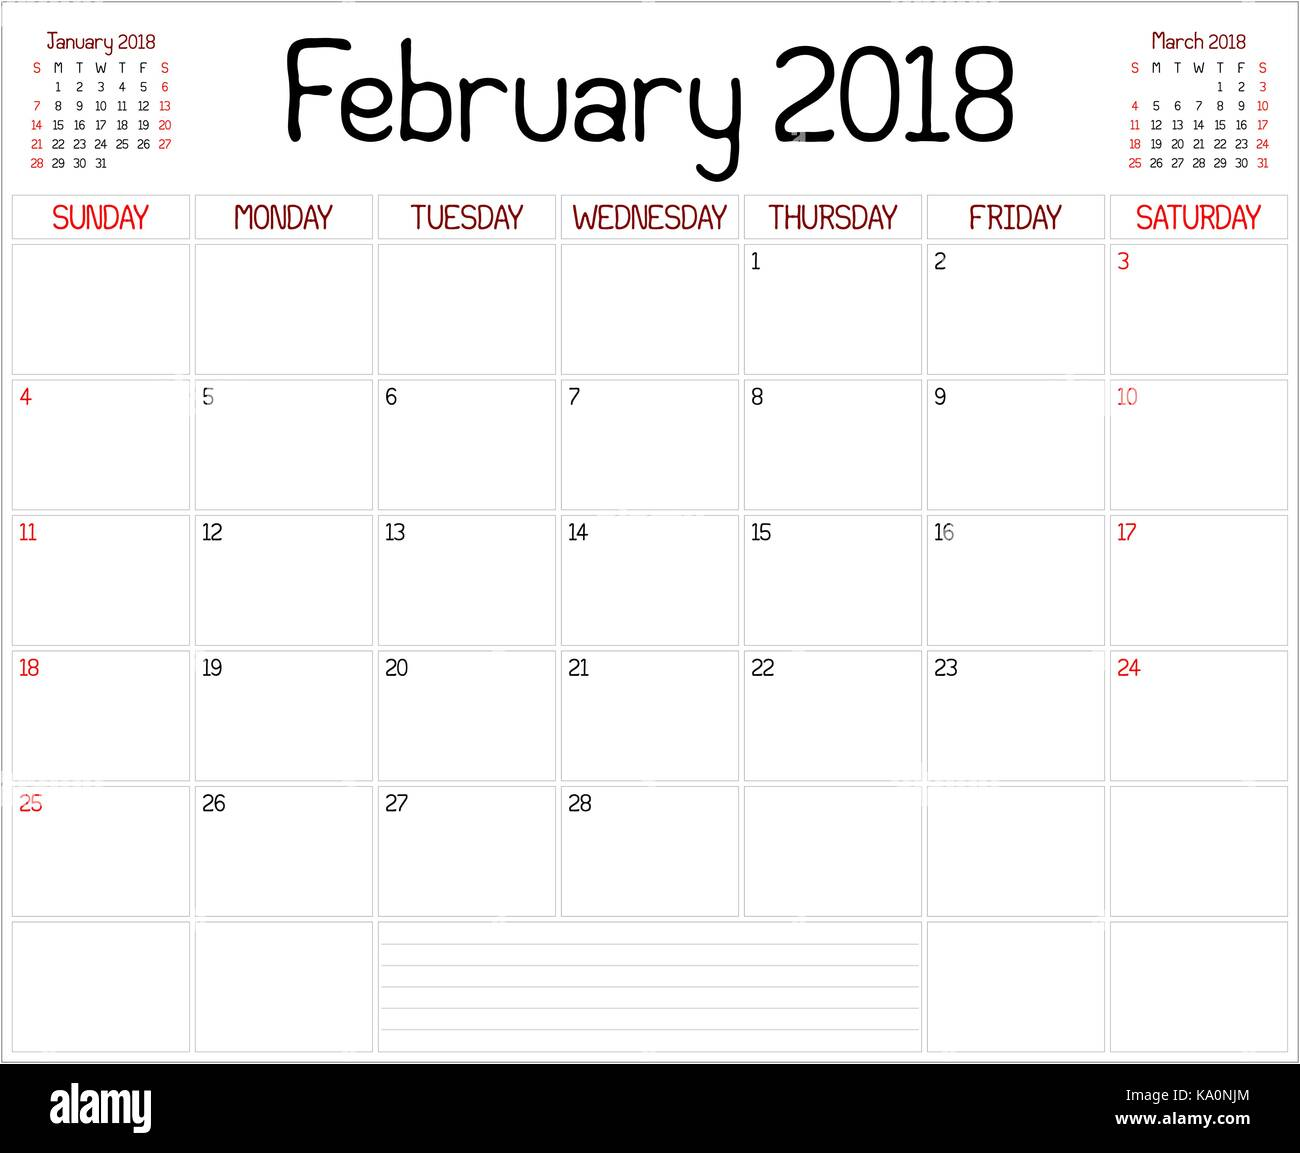 February Calendar Planner : Year february planner a monthly calendar